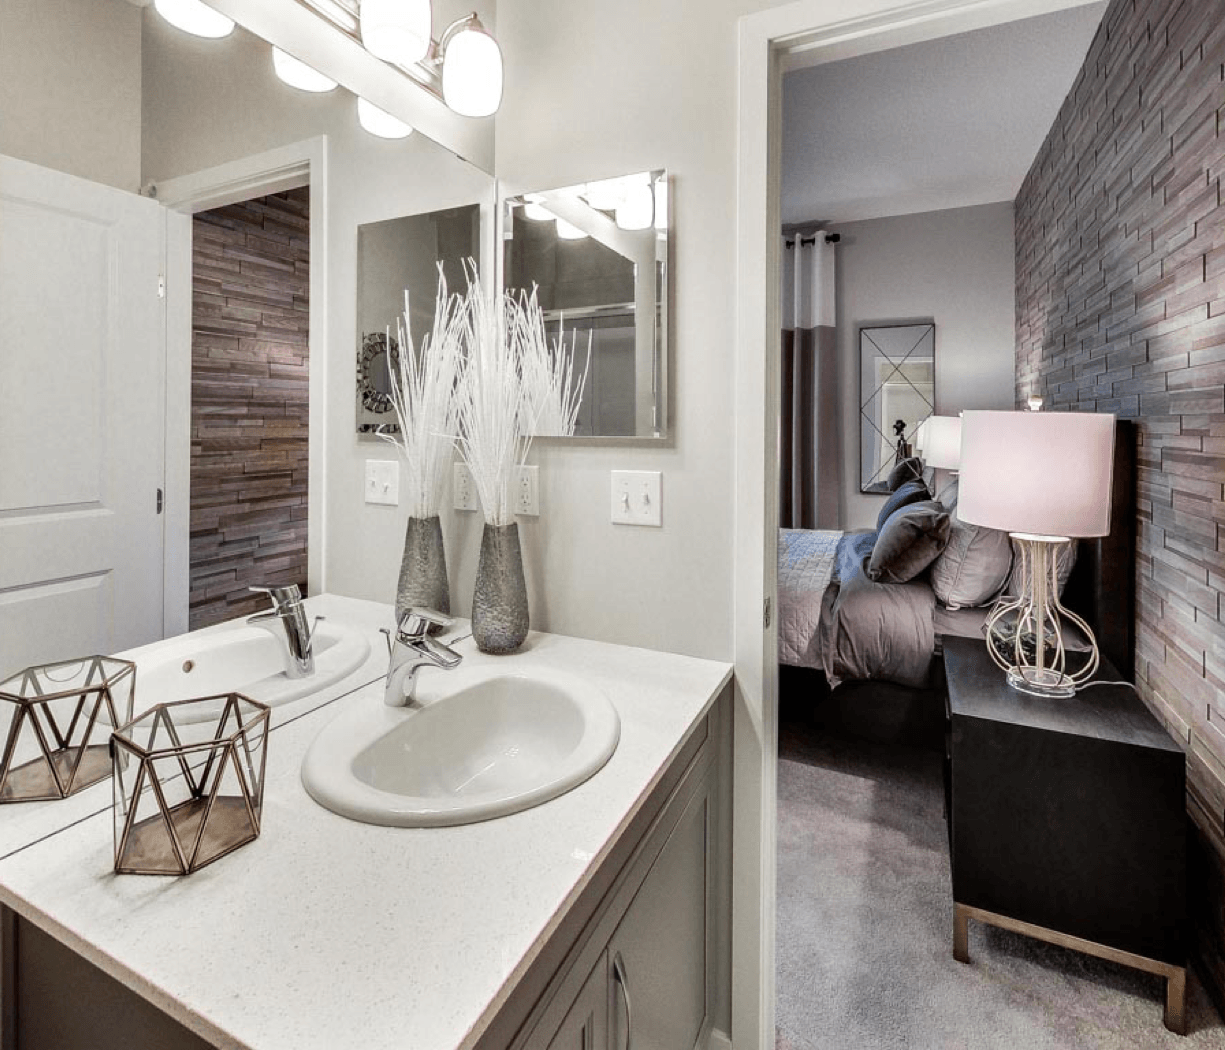 Condo Living 8 Amenities to Look Forward To Ensuite Image